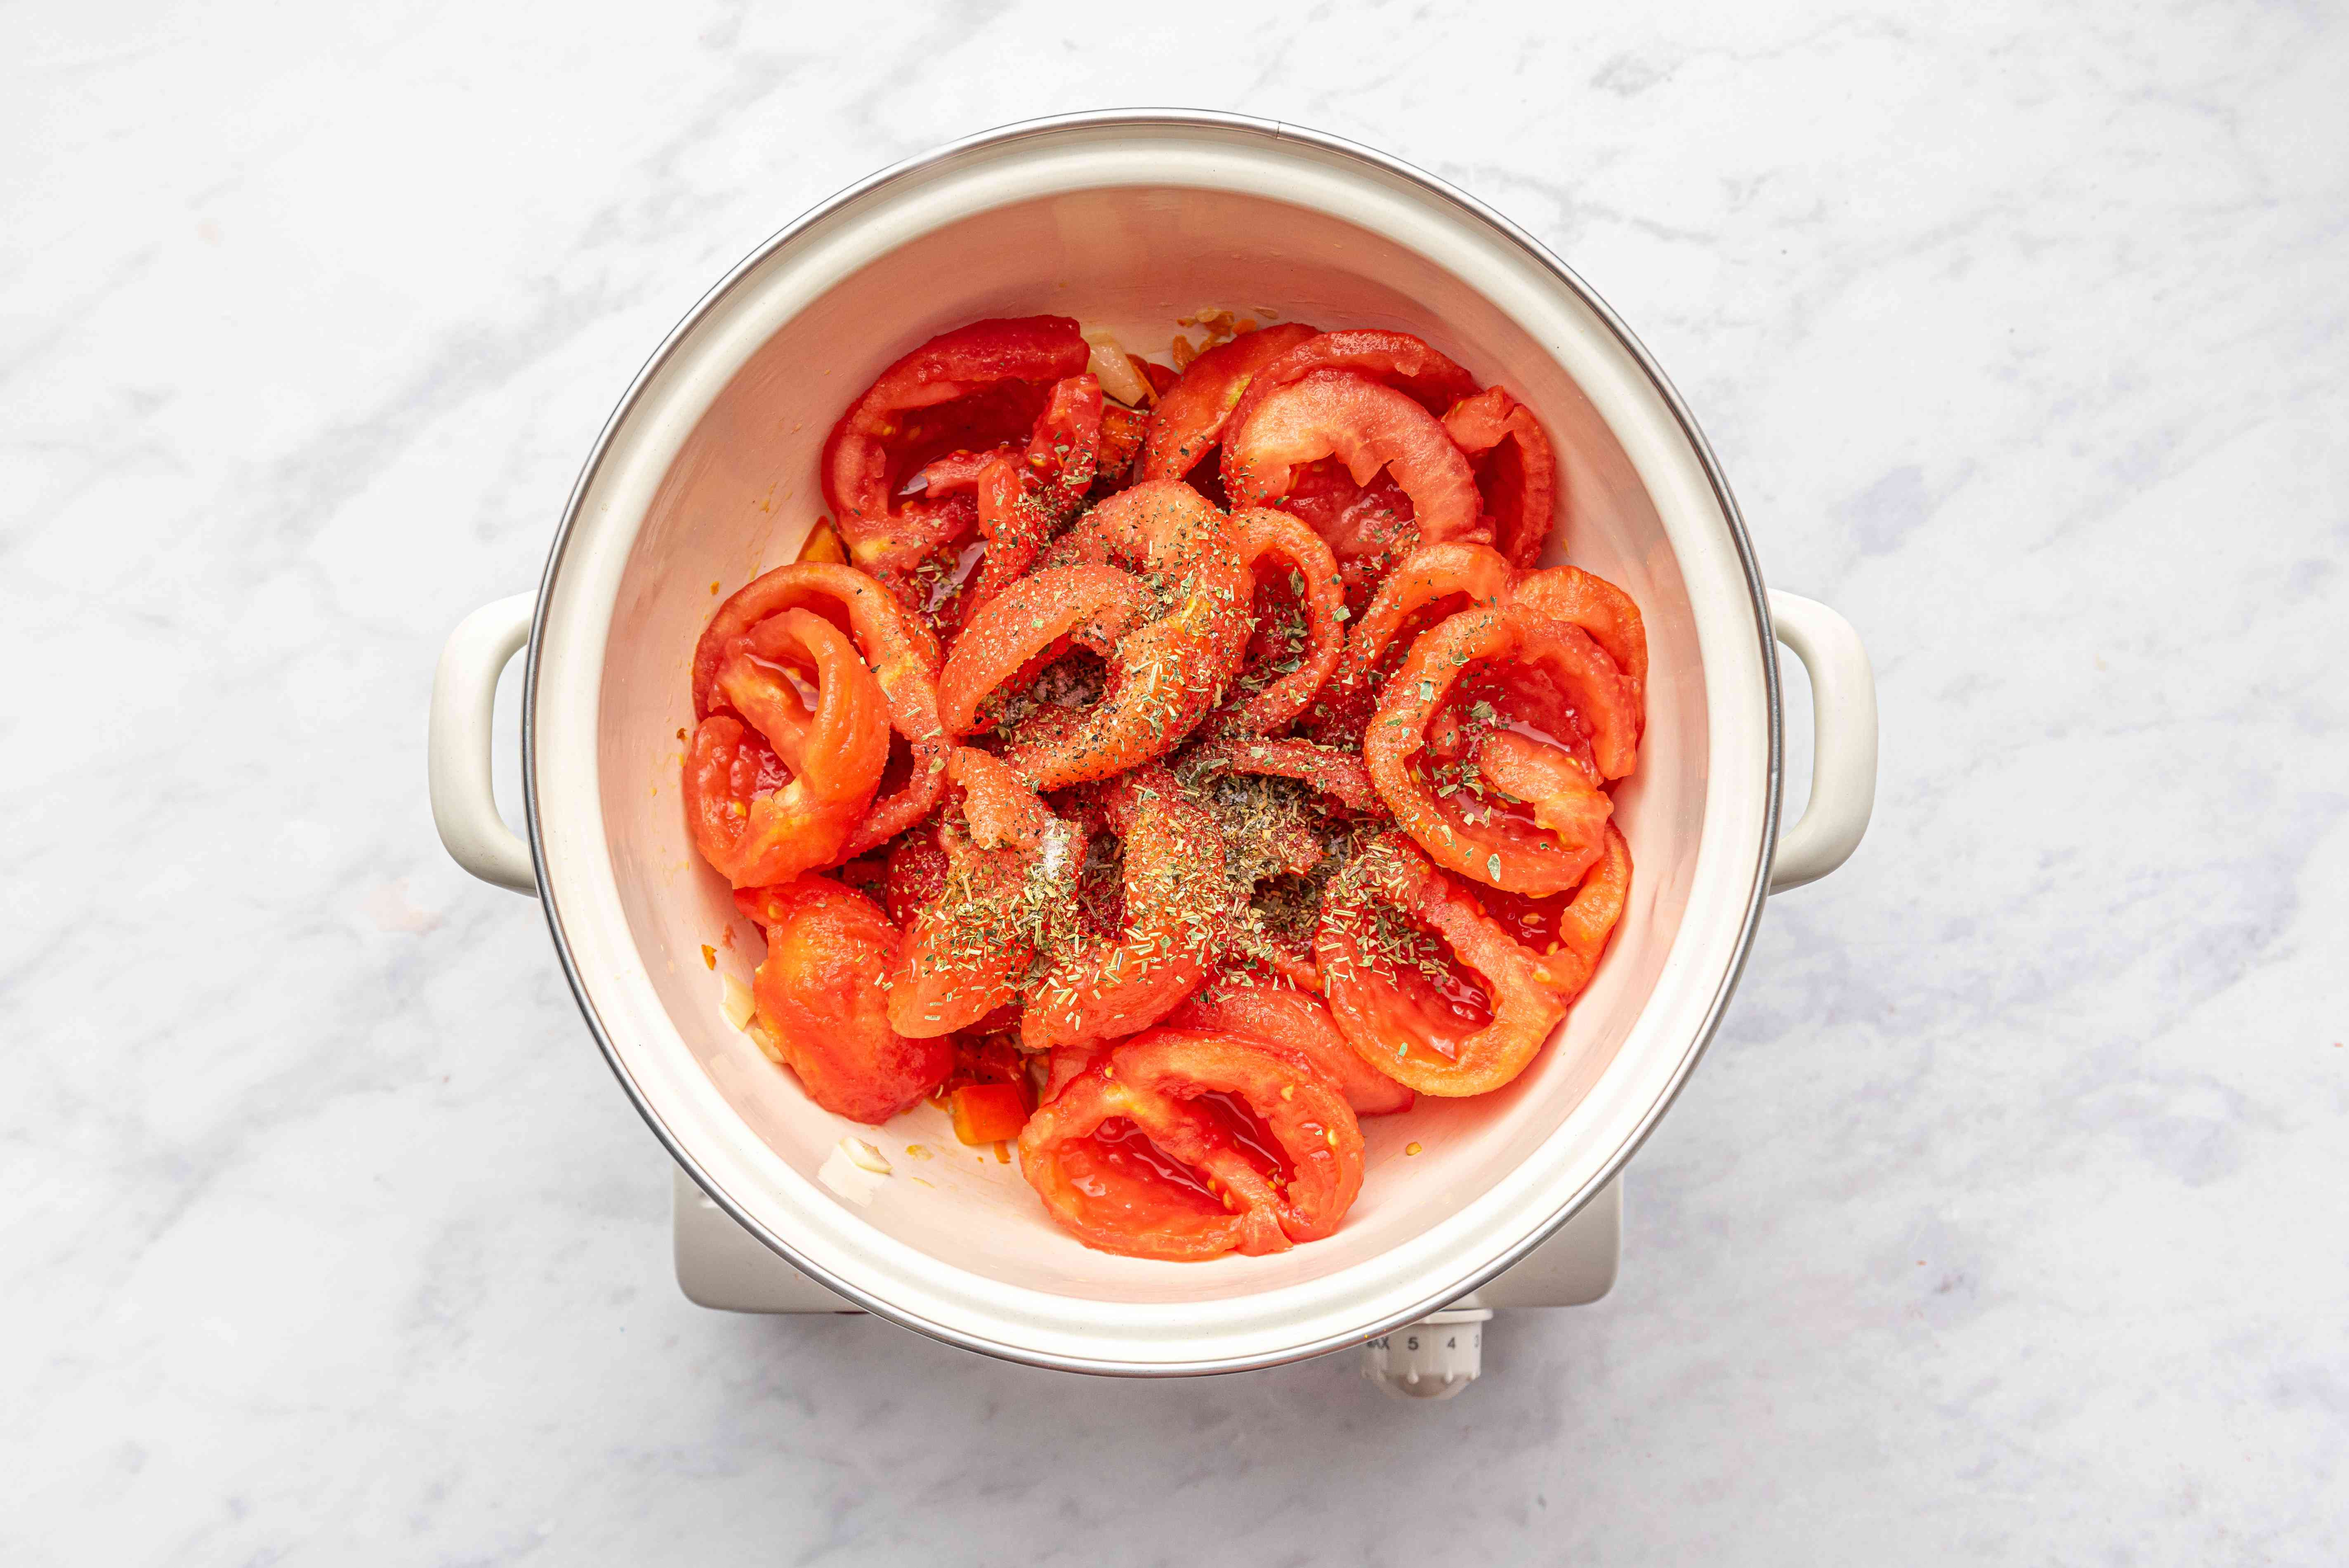 Tomatoes added to the pot